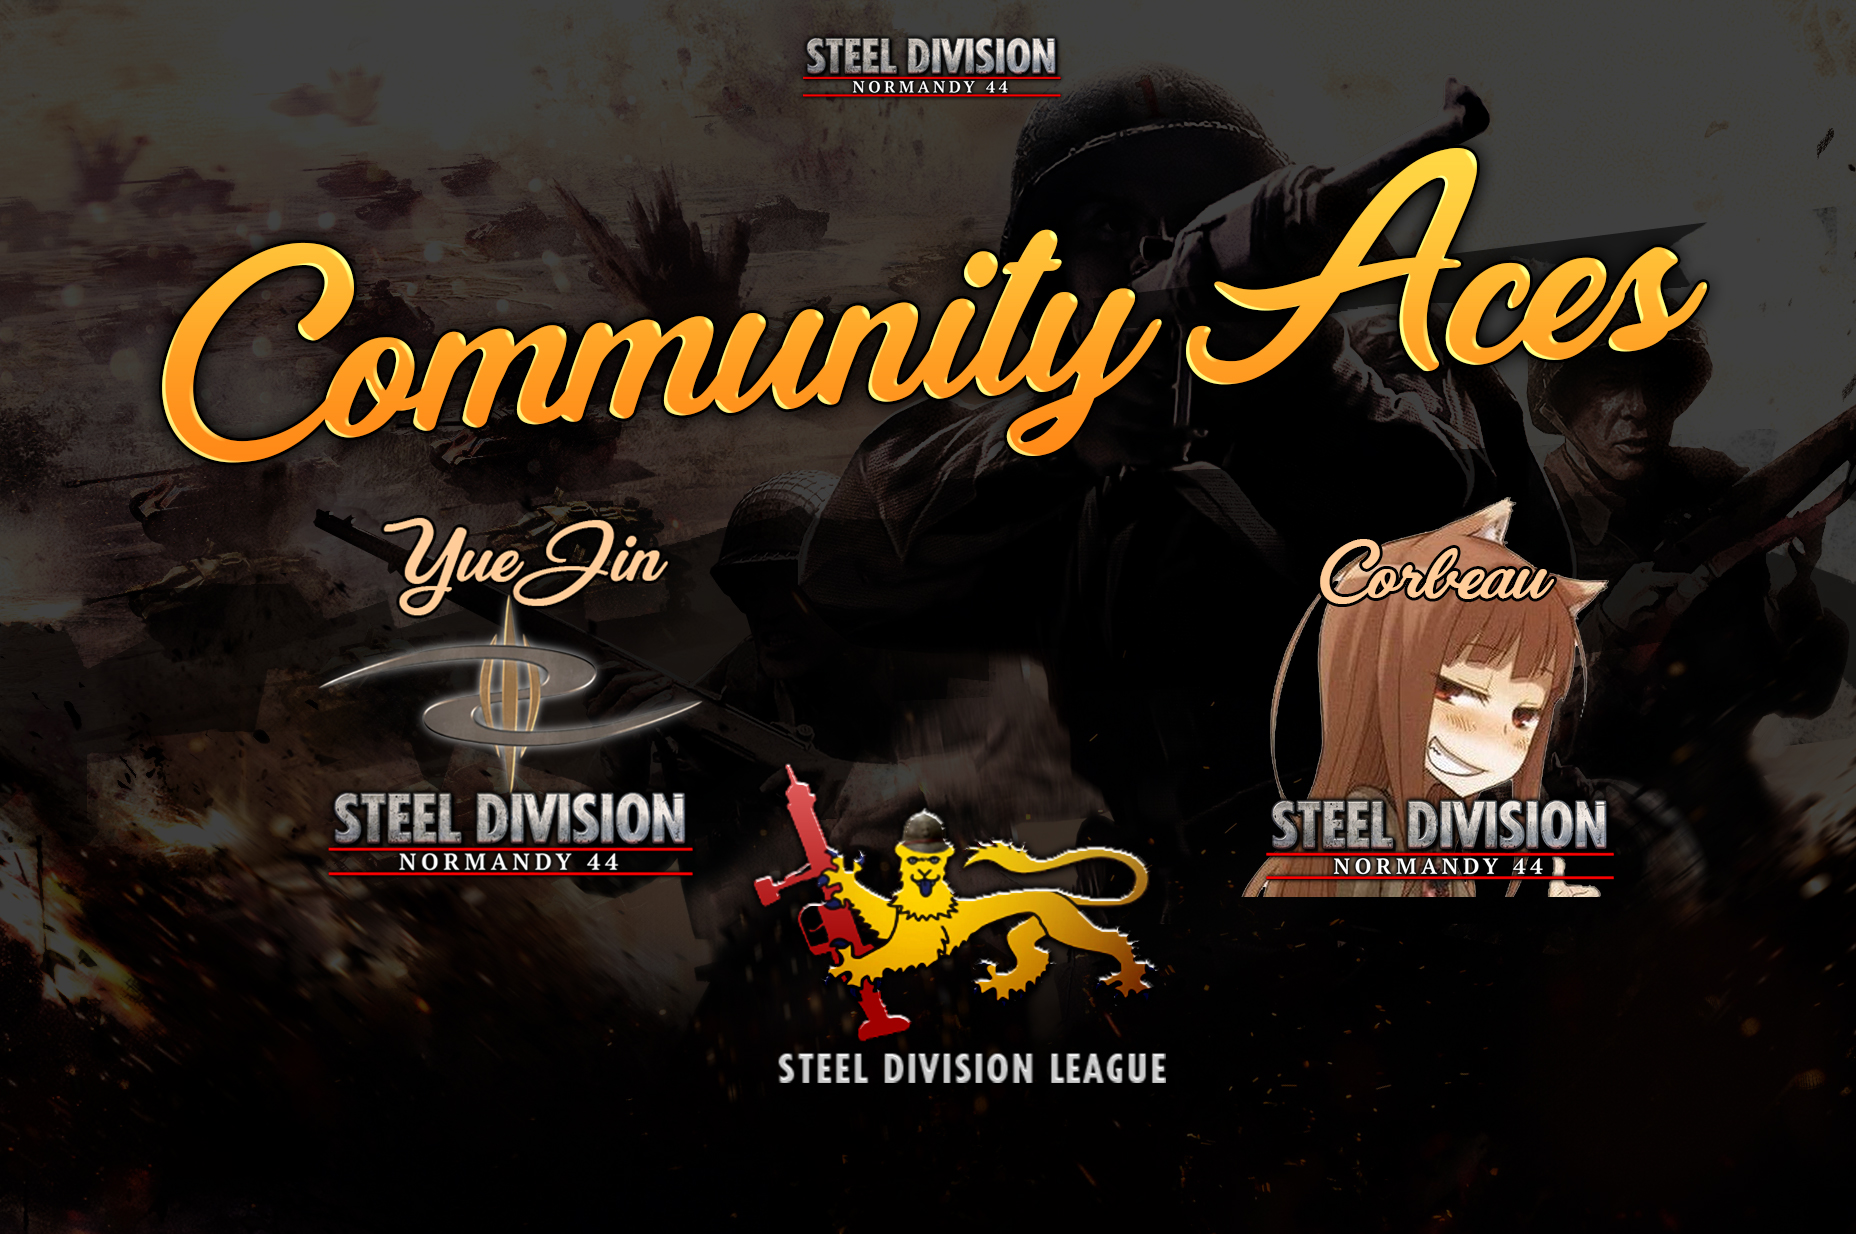 First_Blood_Steel_Division_League_Aces